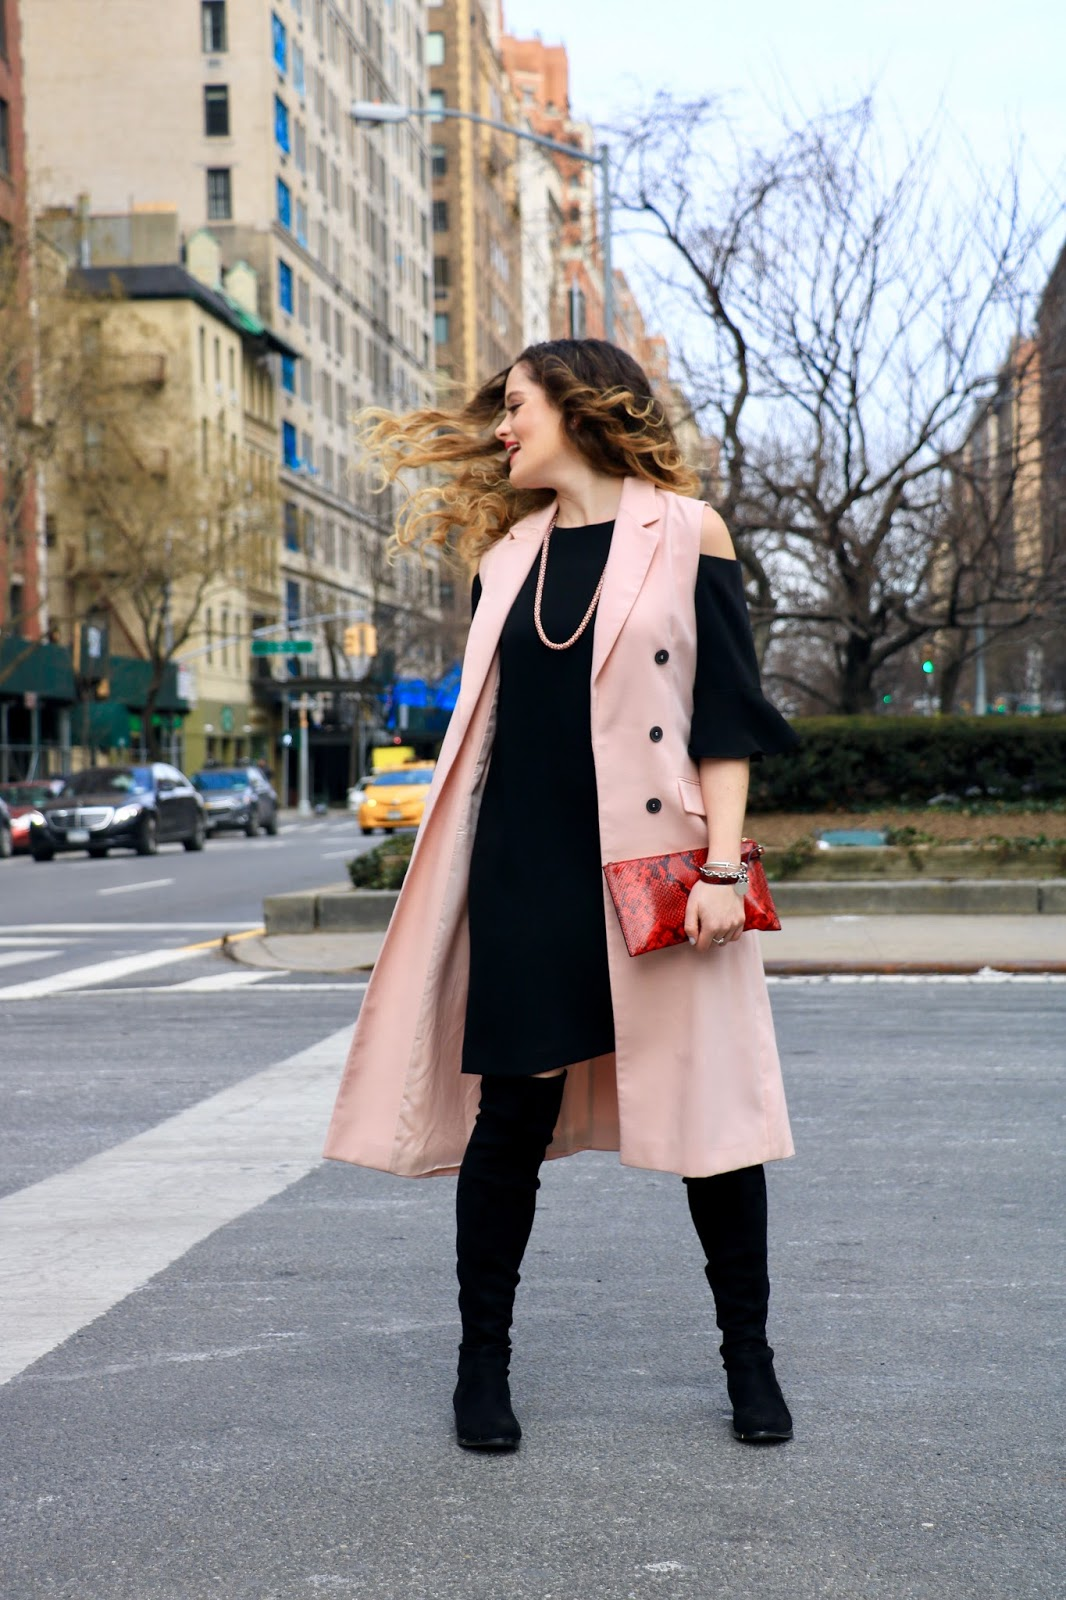 Nyc fashion blogger Kathleen Harper's fashion week street style